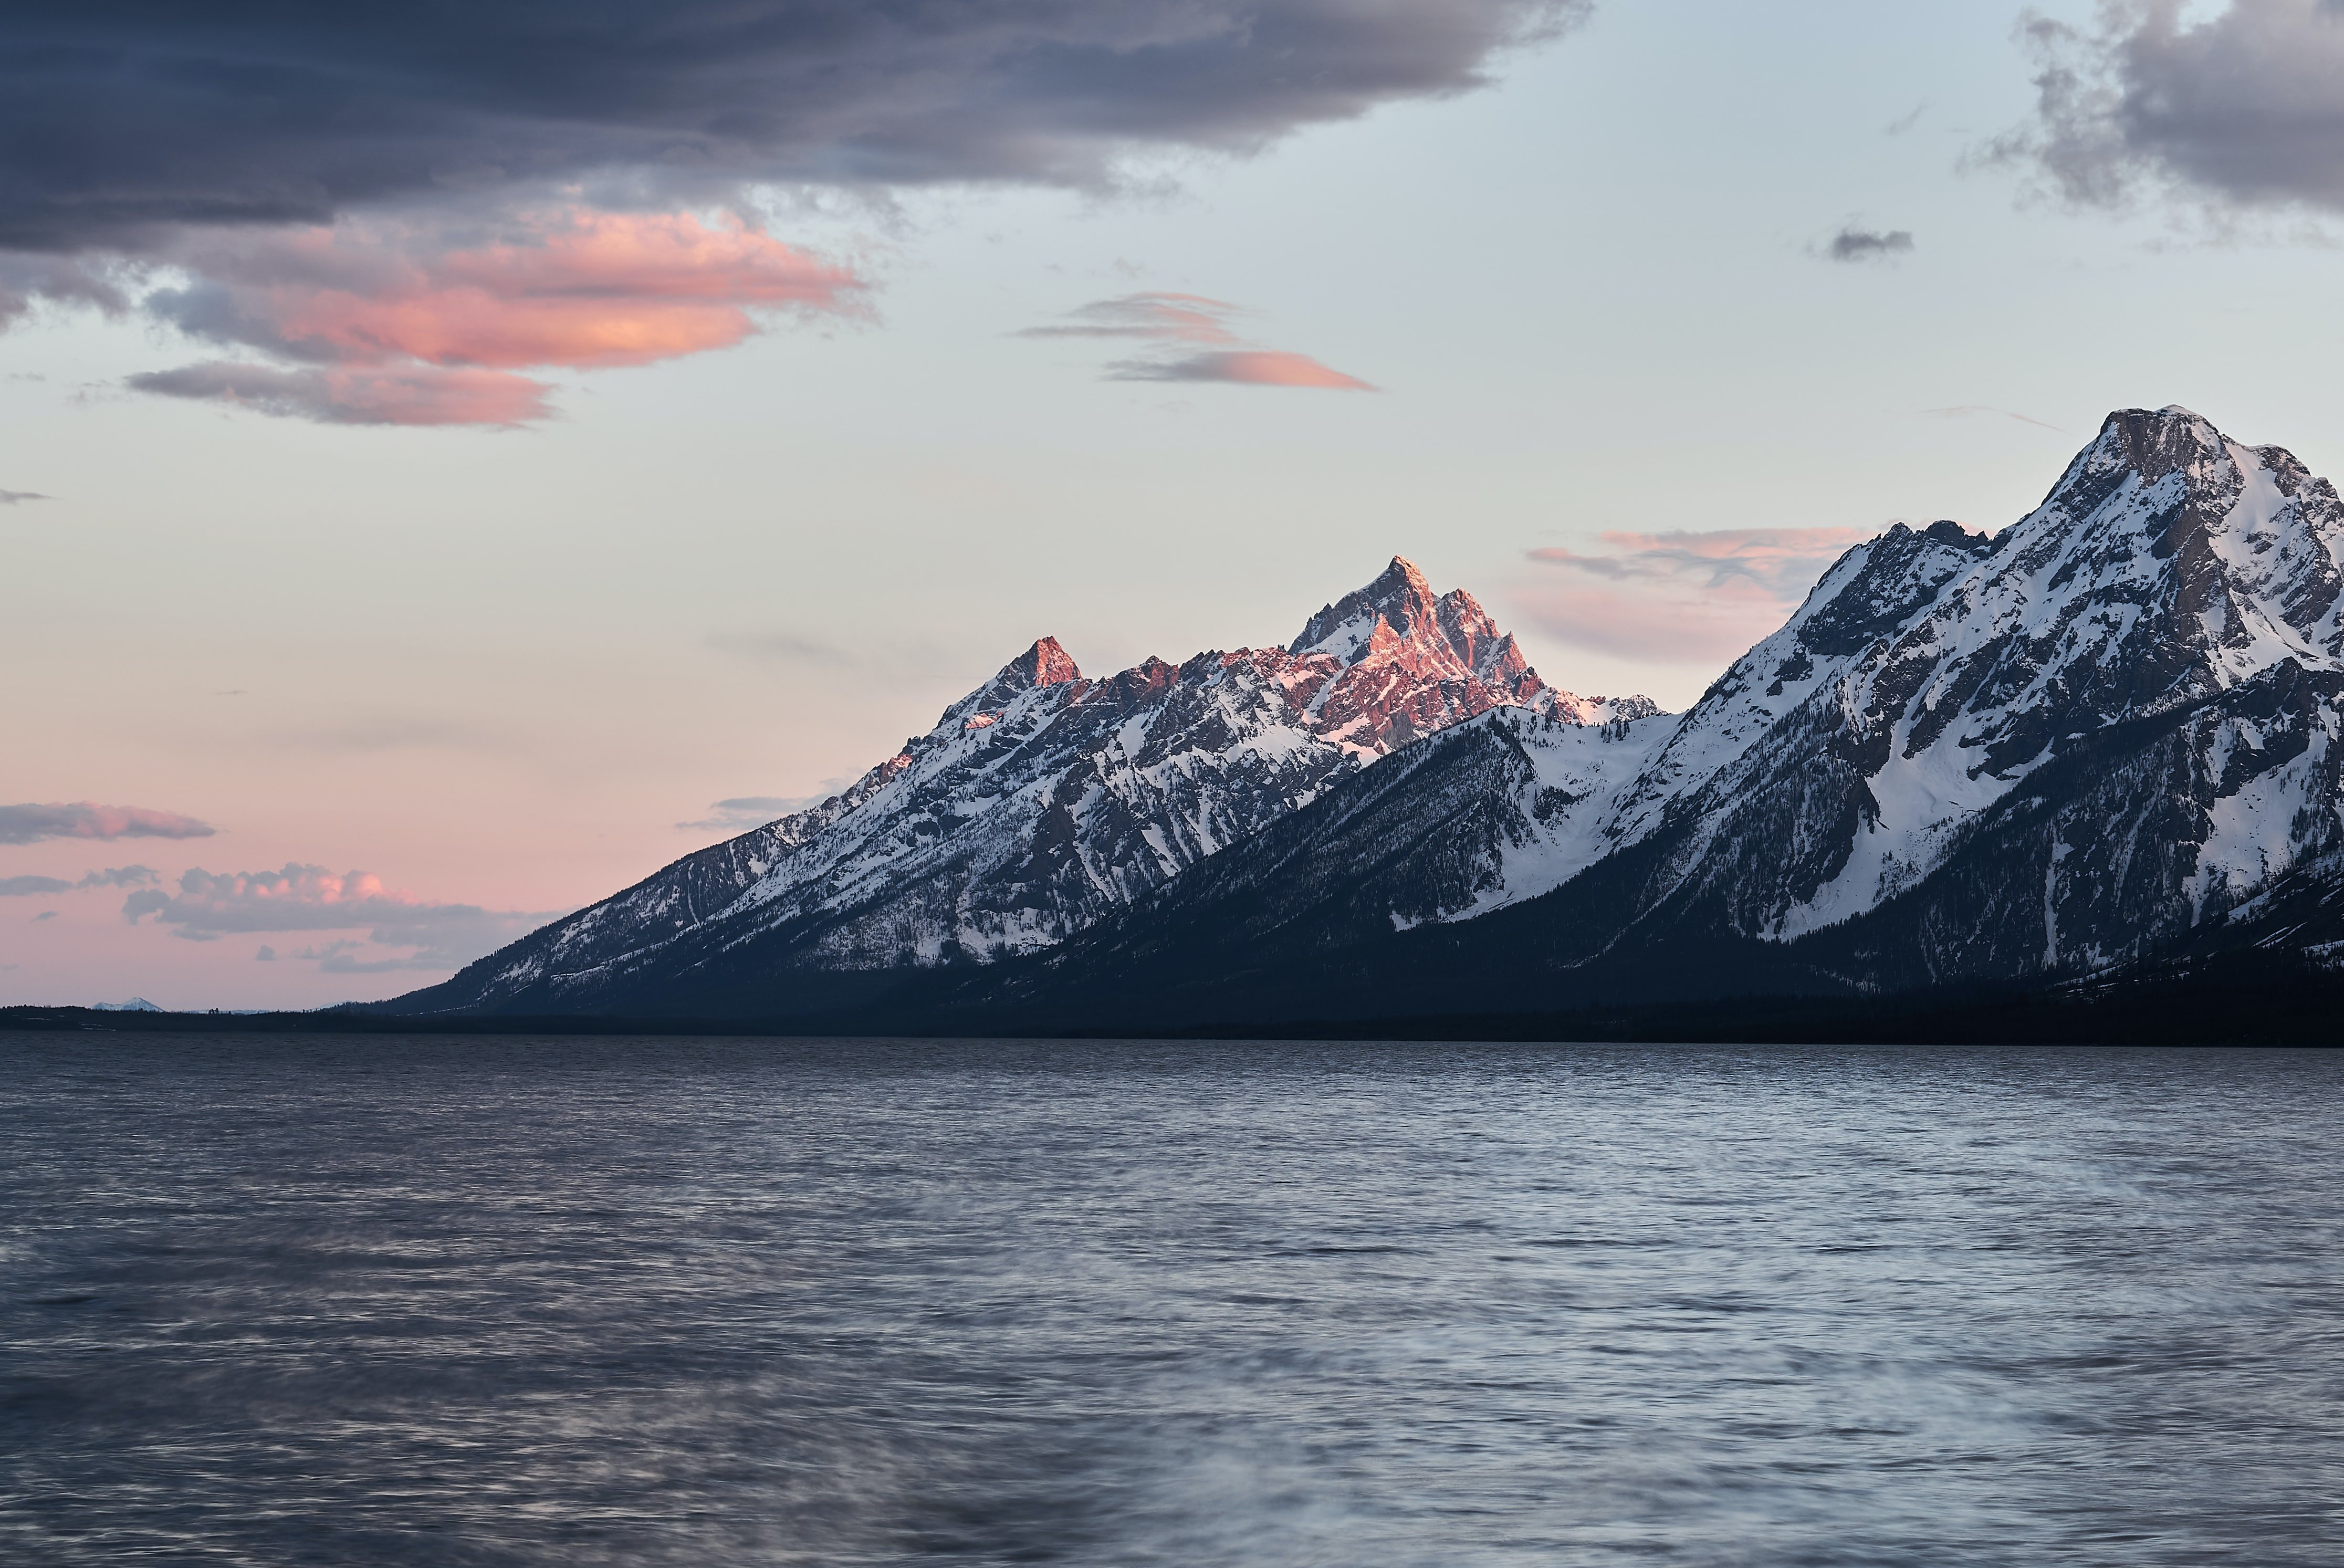 View from a lake on the snow-capped mountain peaks on the shore